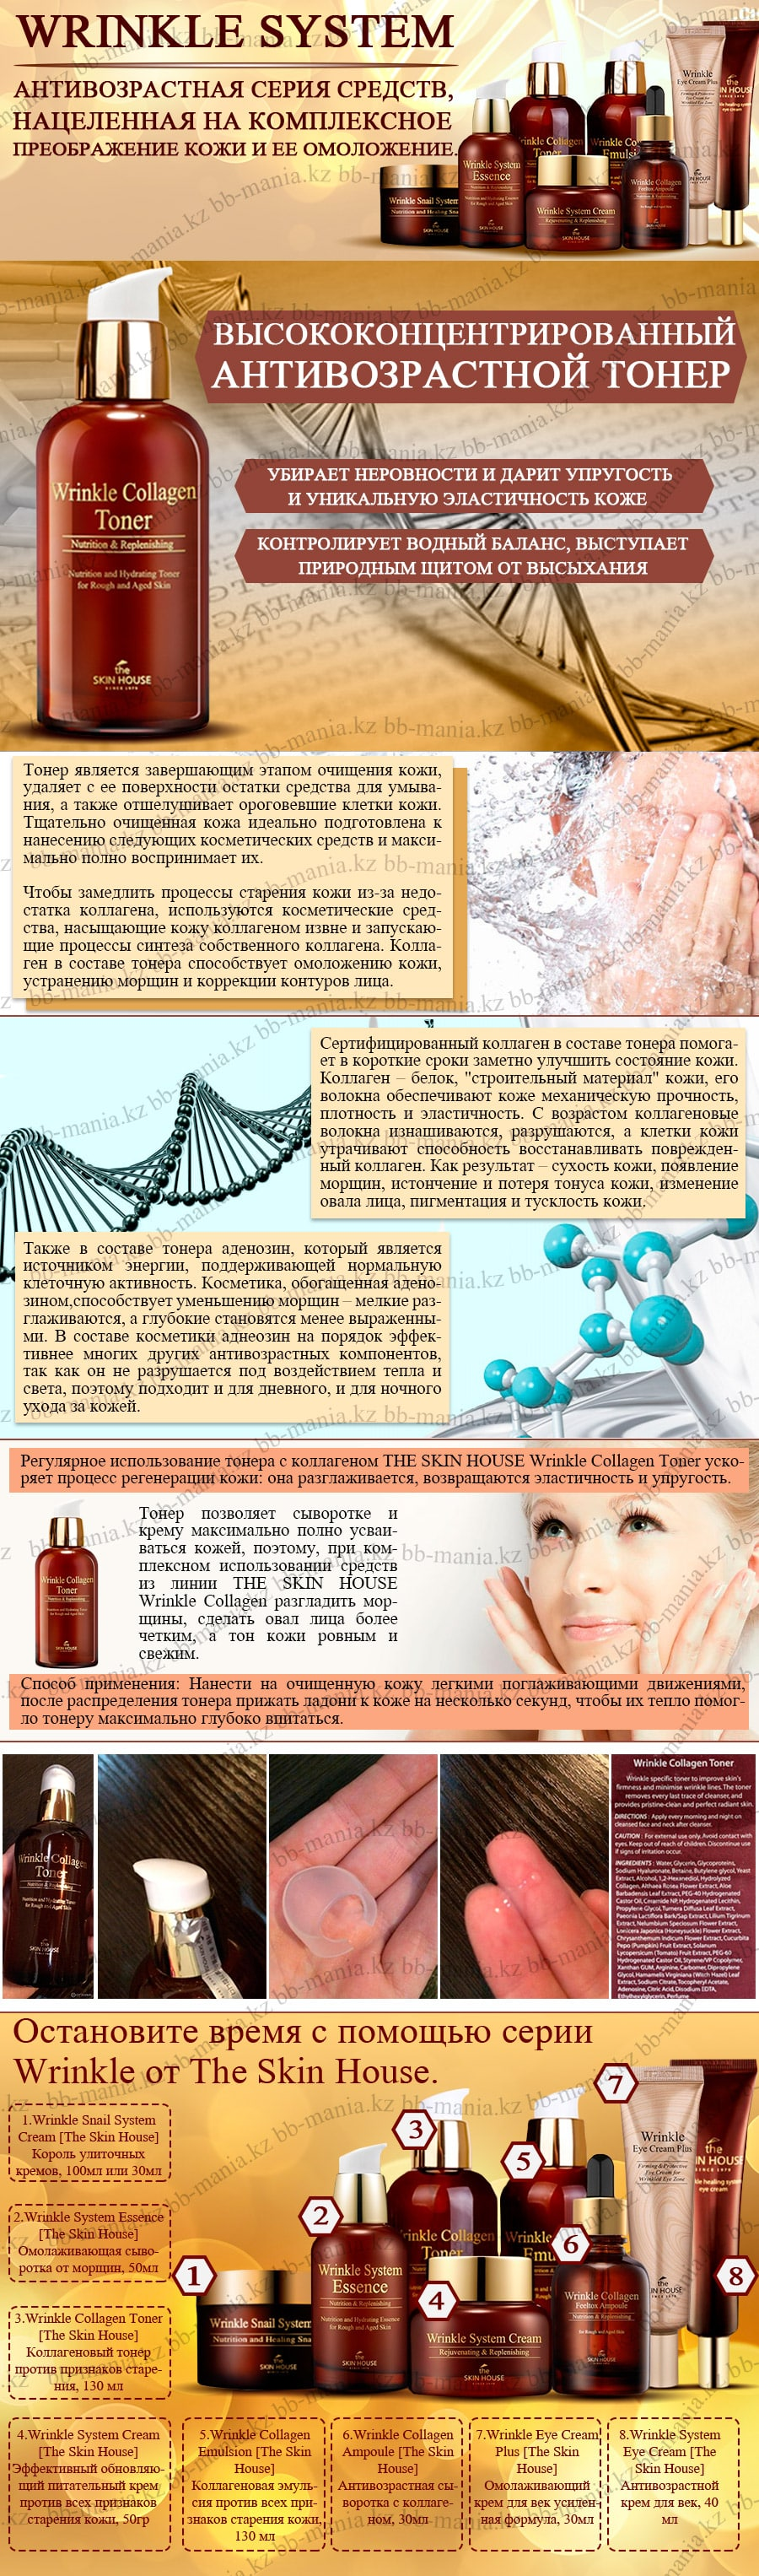 Wrinkle-Collagen-Toner-[The-Skin-House]-min